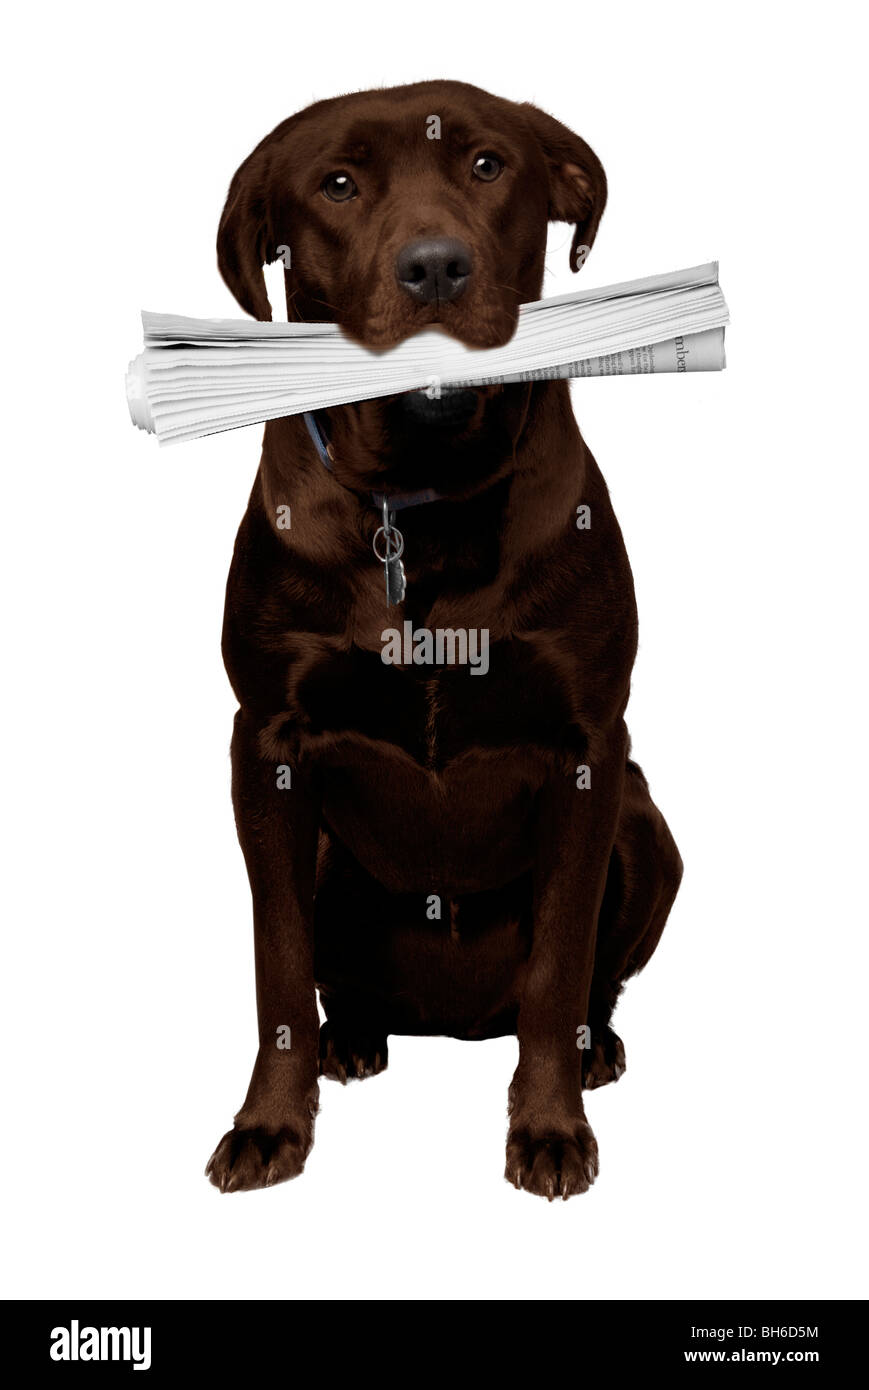 Reddish Brown Labrador Retriever bringing the newspaper - Stock Image